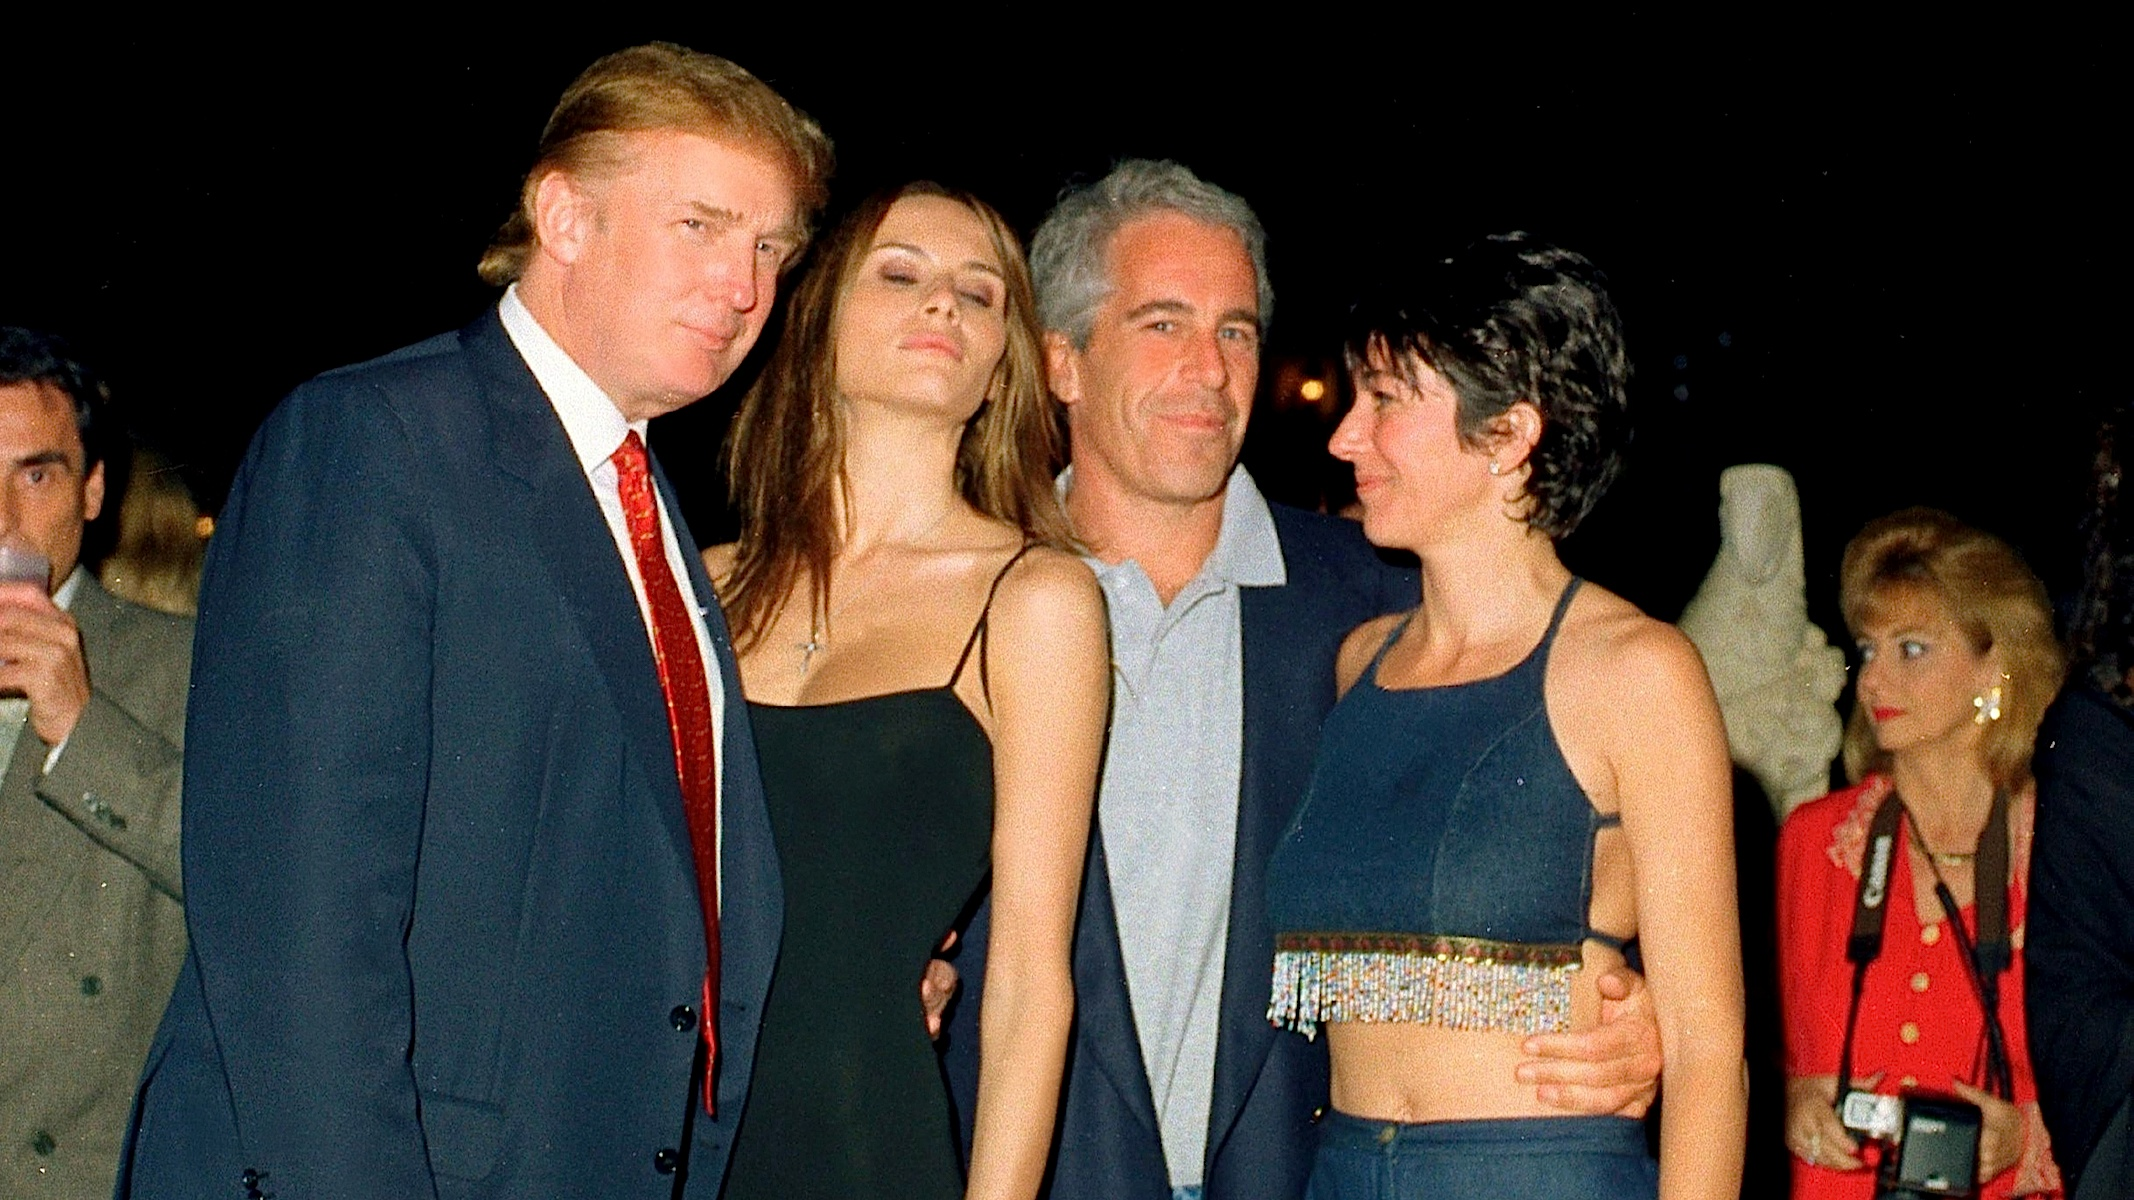 The Media Ignored Jeff Epstein Until They Couldn't